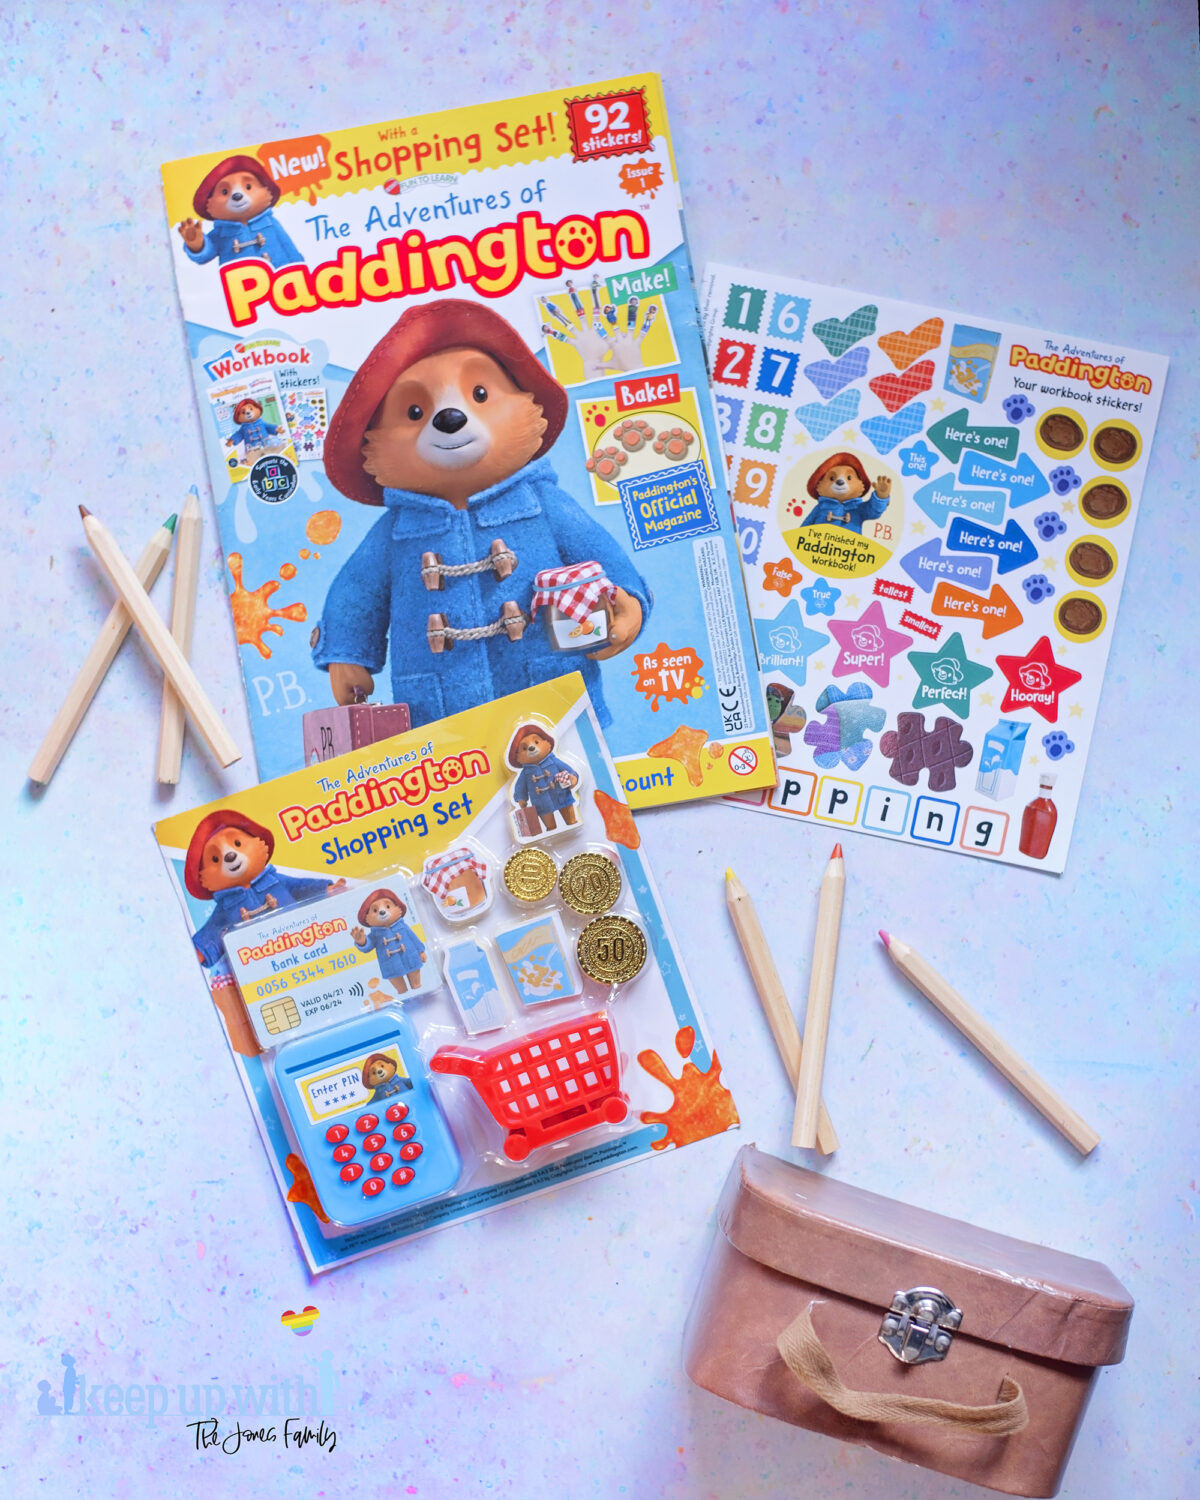 The Adventures of Paddington Bear Magazine EYFS. Picture shows issue one with free Paddington Shopping set laid out on blue background. Paddington's brown case is in the photograph.